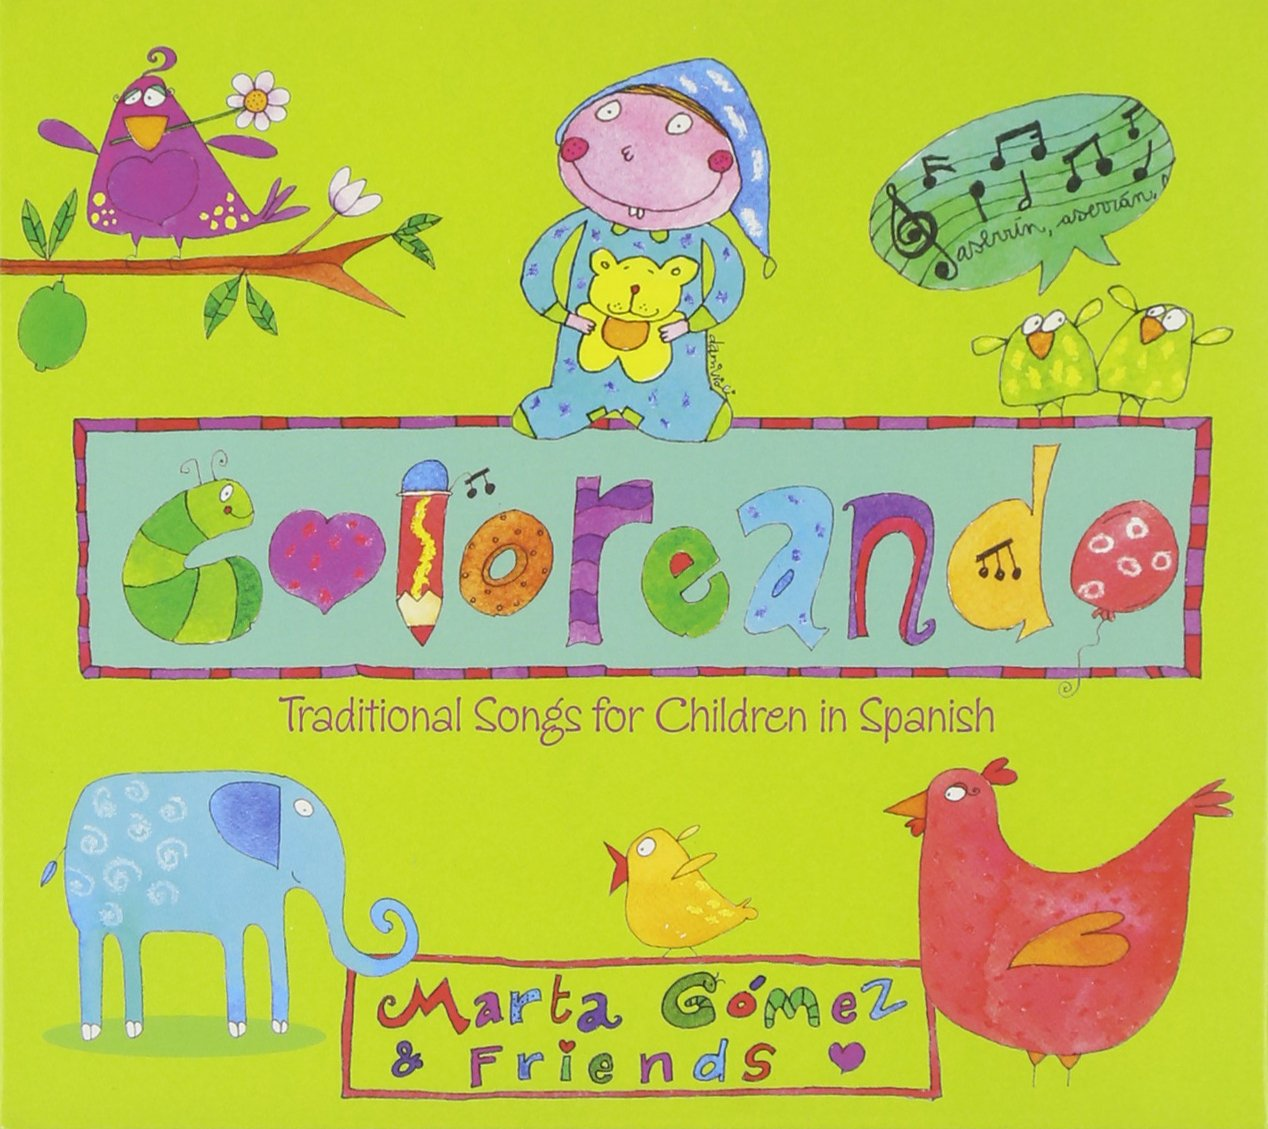 Coloreando: Traditional Songs for Children in Spanish by Global Language